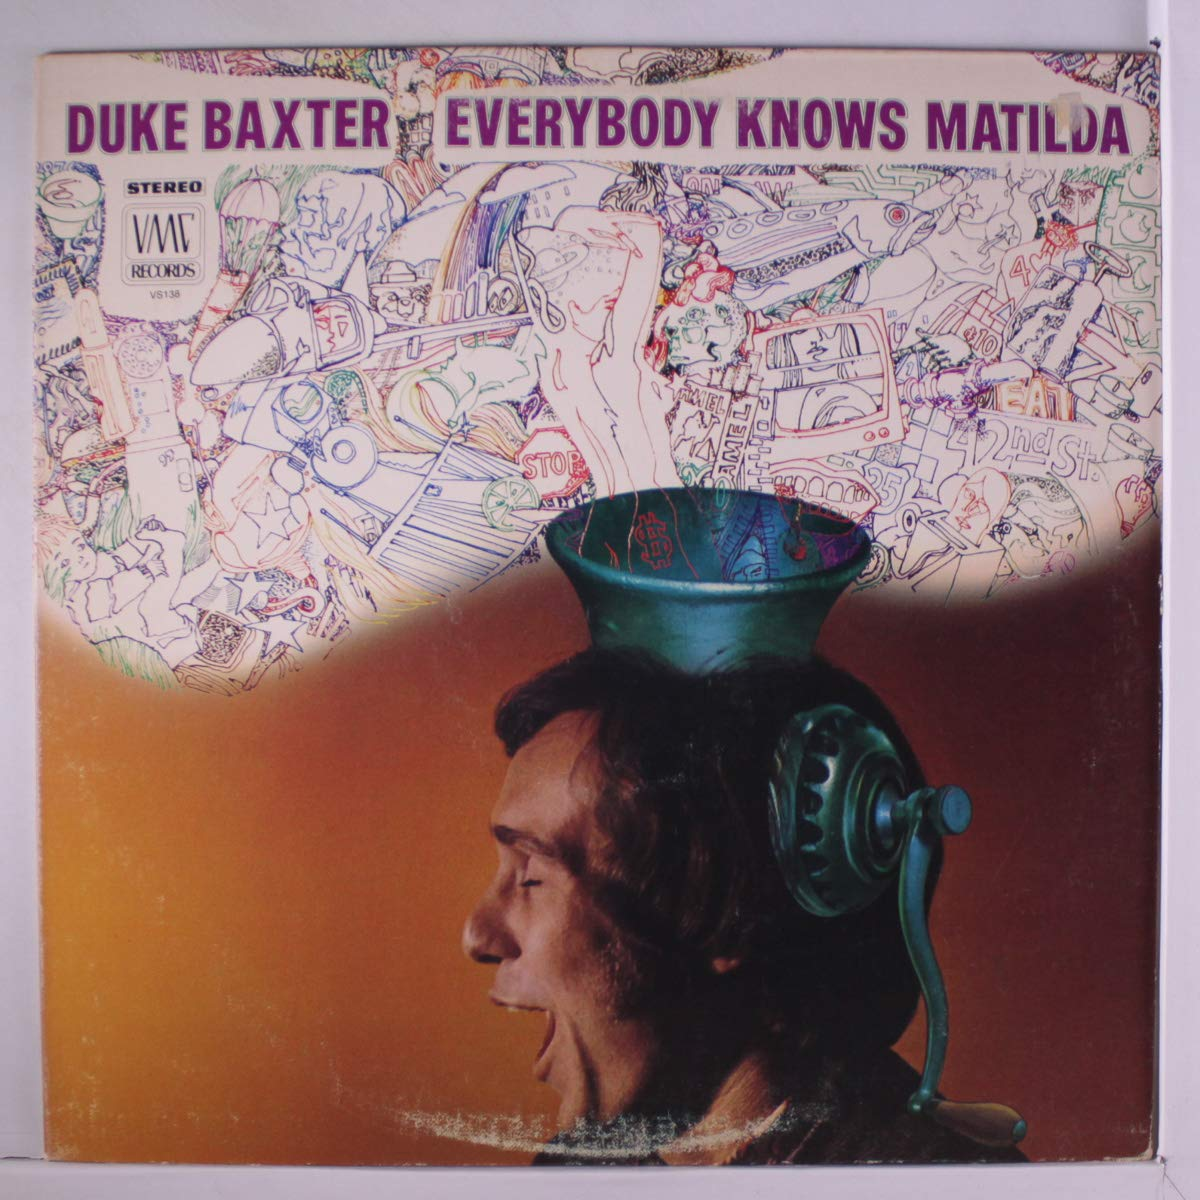 Image result for everybody knows matilda duke baxter single images